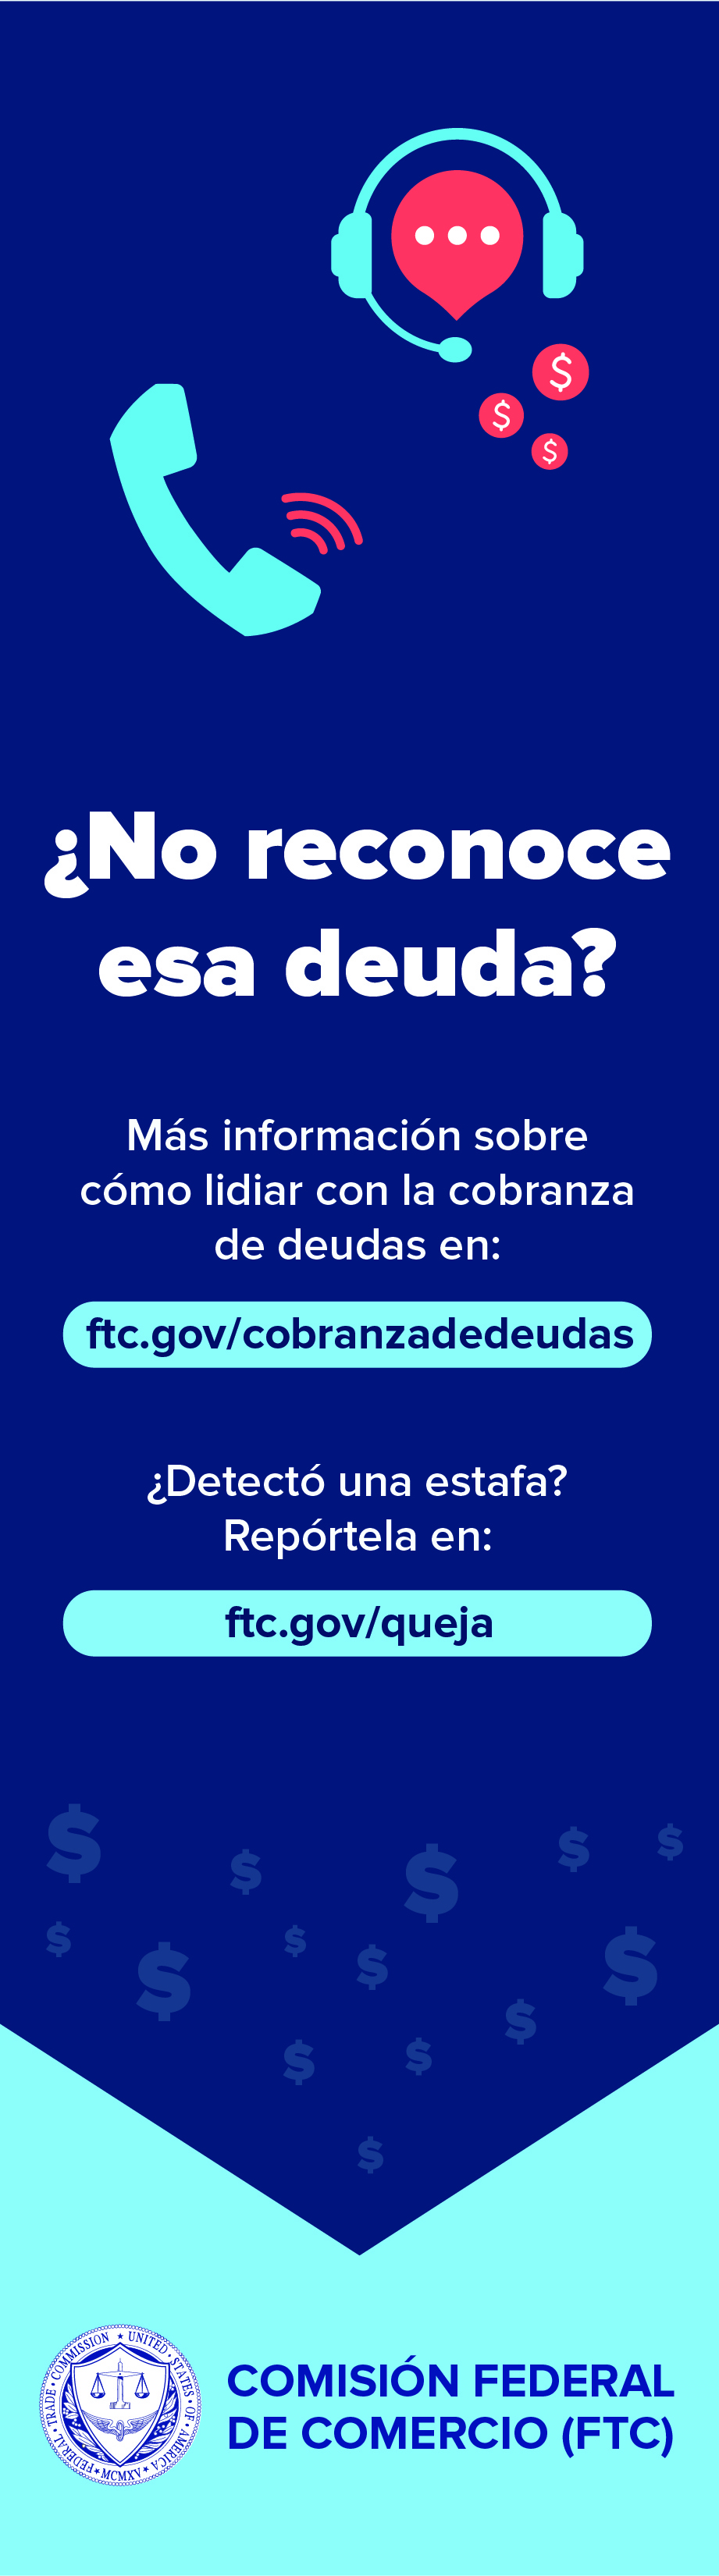 Don't recognize that debt? Learn more about dealing with debt collection at: ftc.gov/debtcollection. Spot a scam? Report it to: ftc.gov/complaint